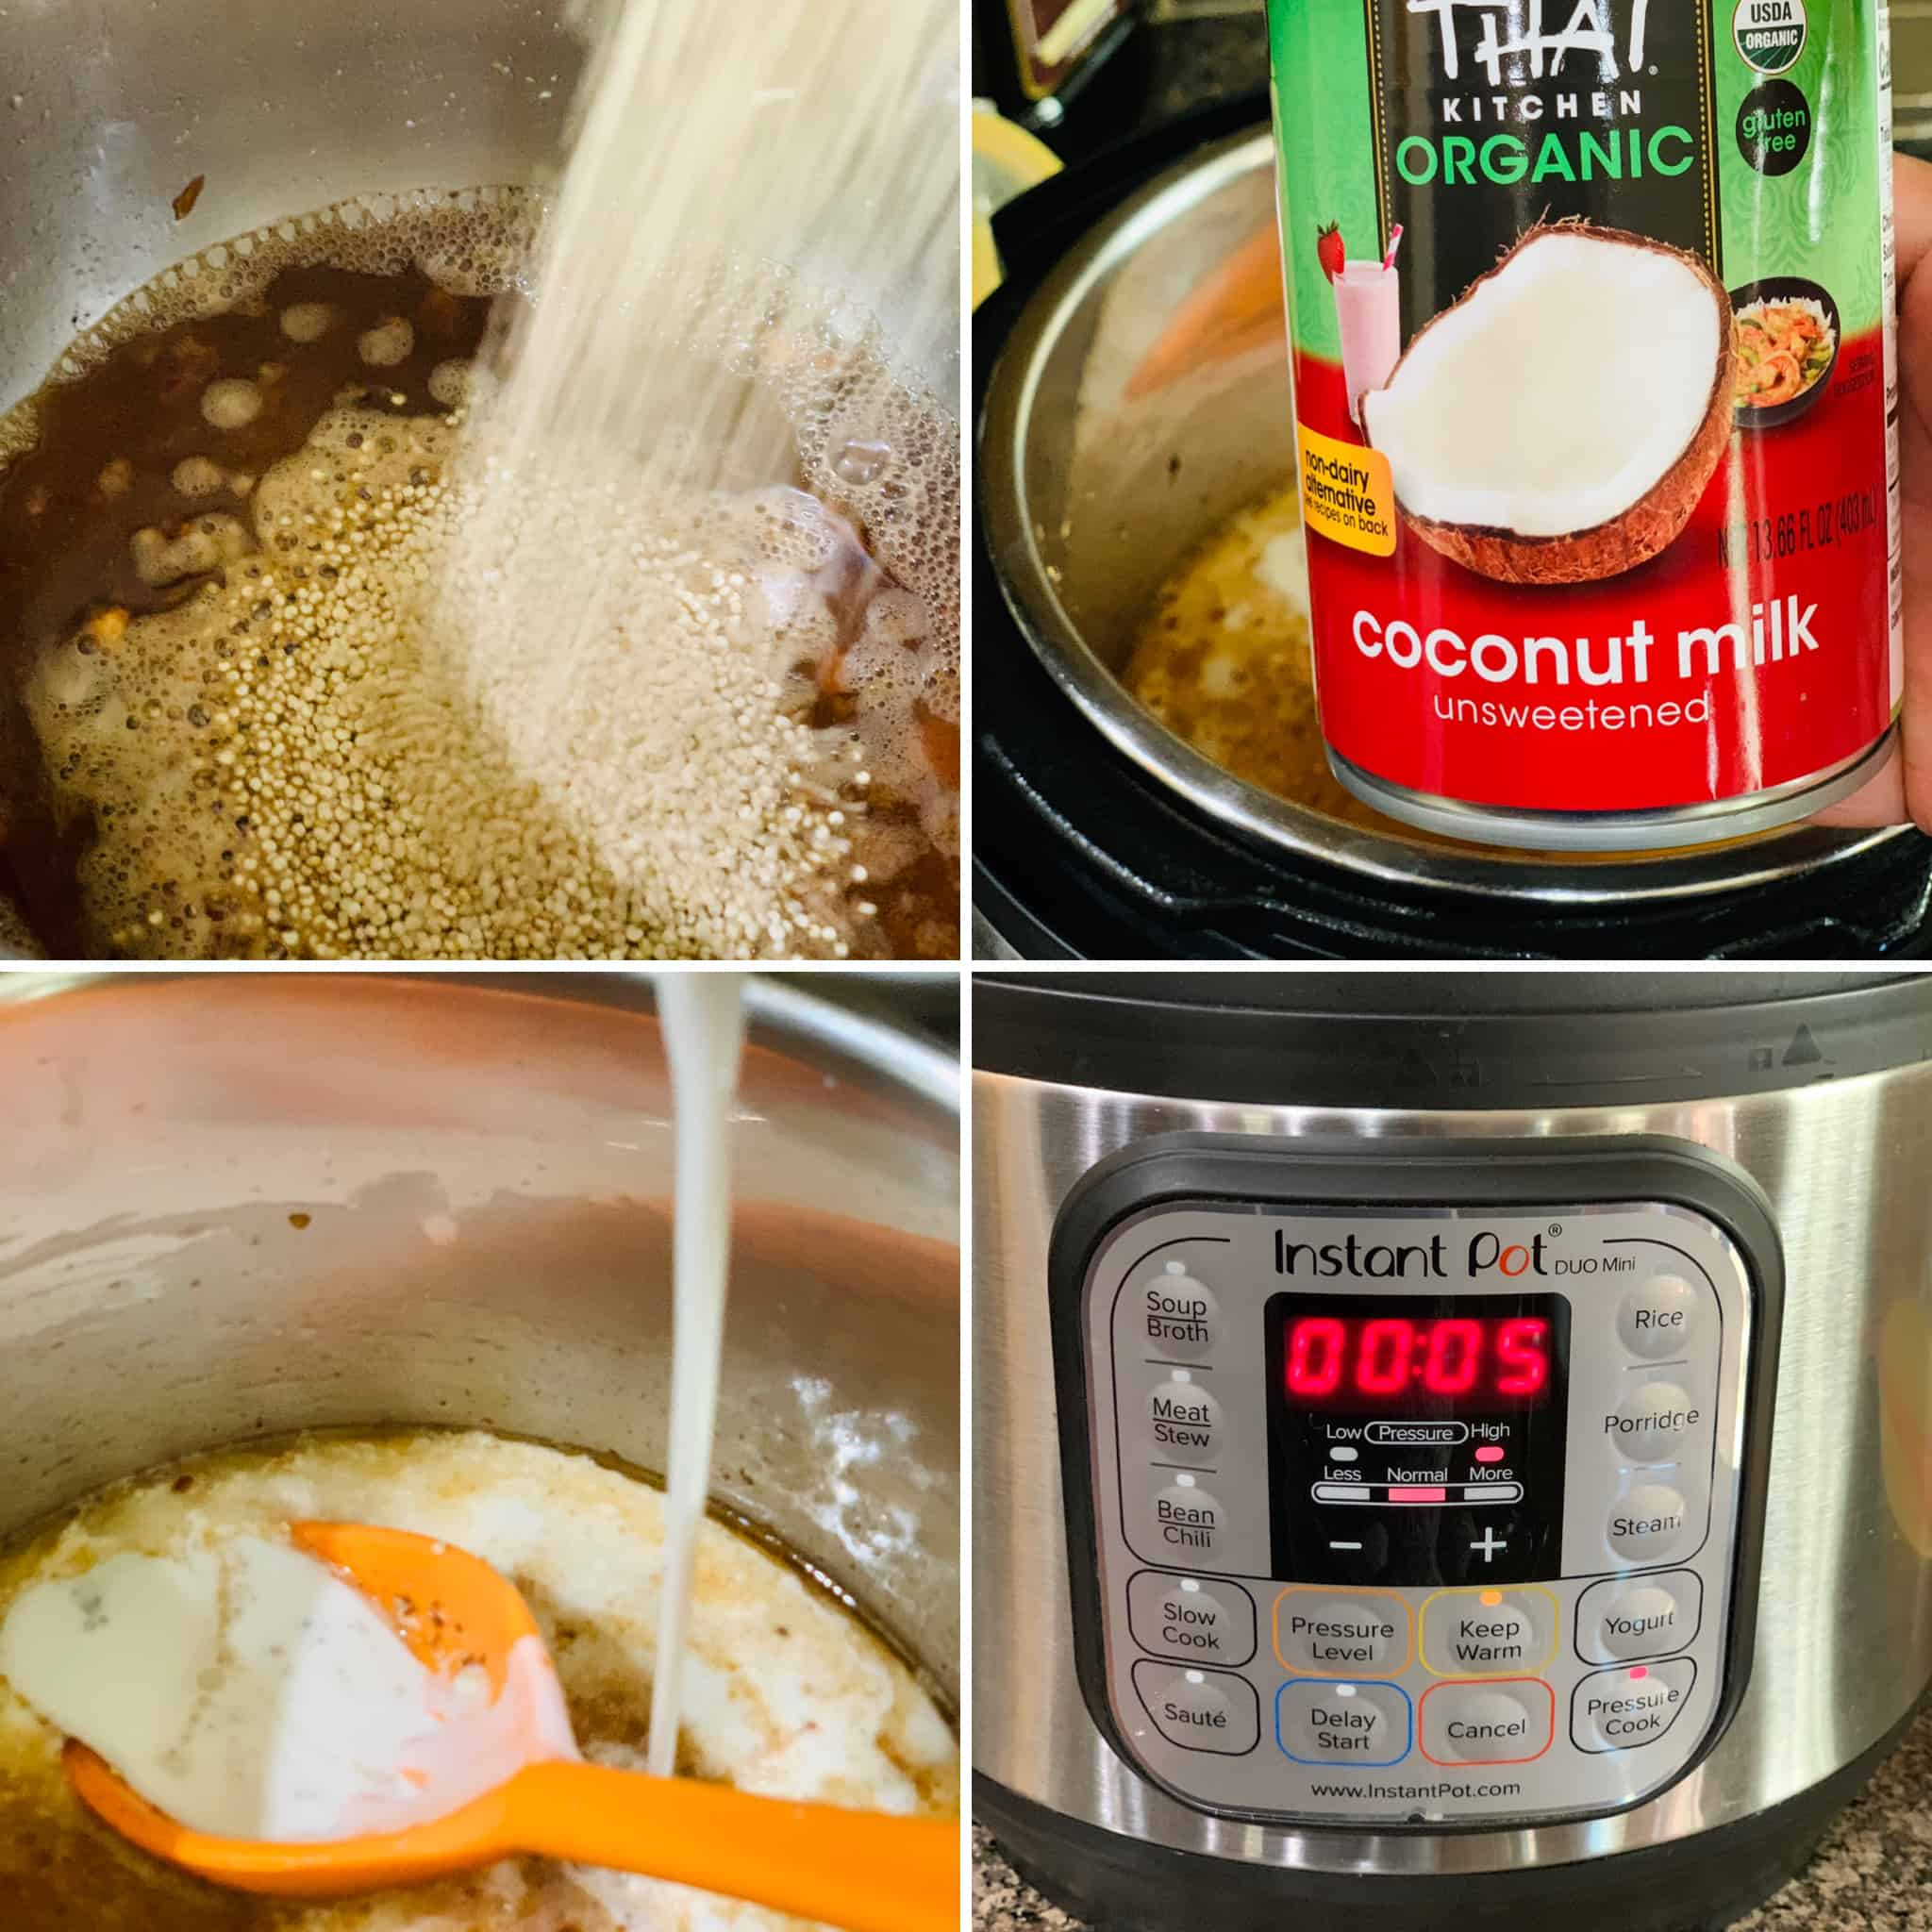 Roast quinoa, add coconut milk and turn on pressure cook mode on Instant pot.